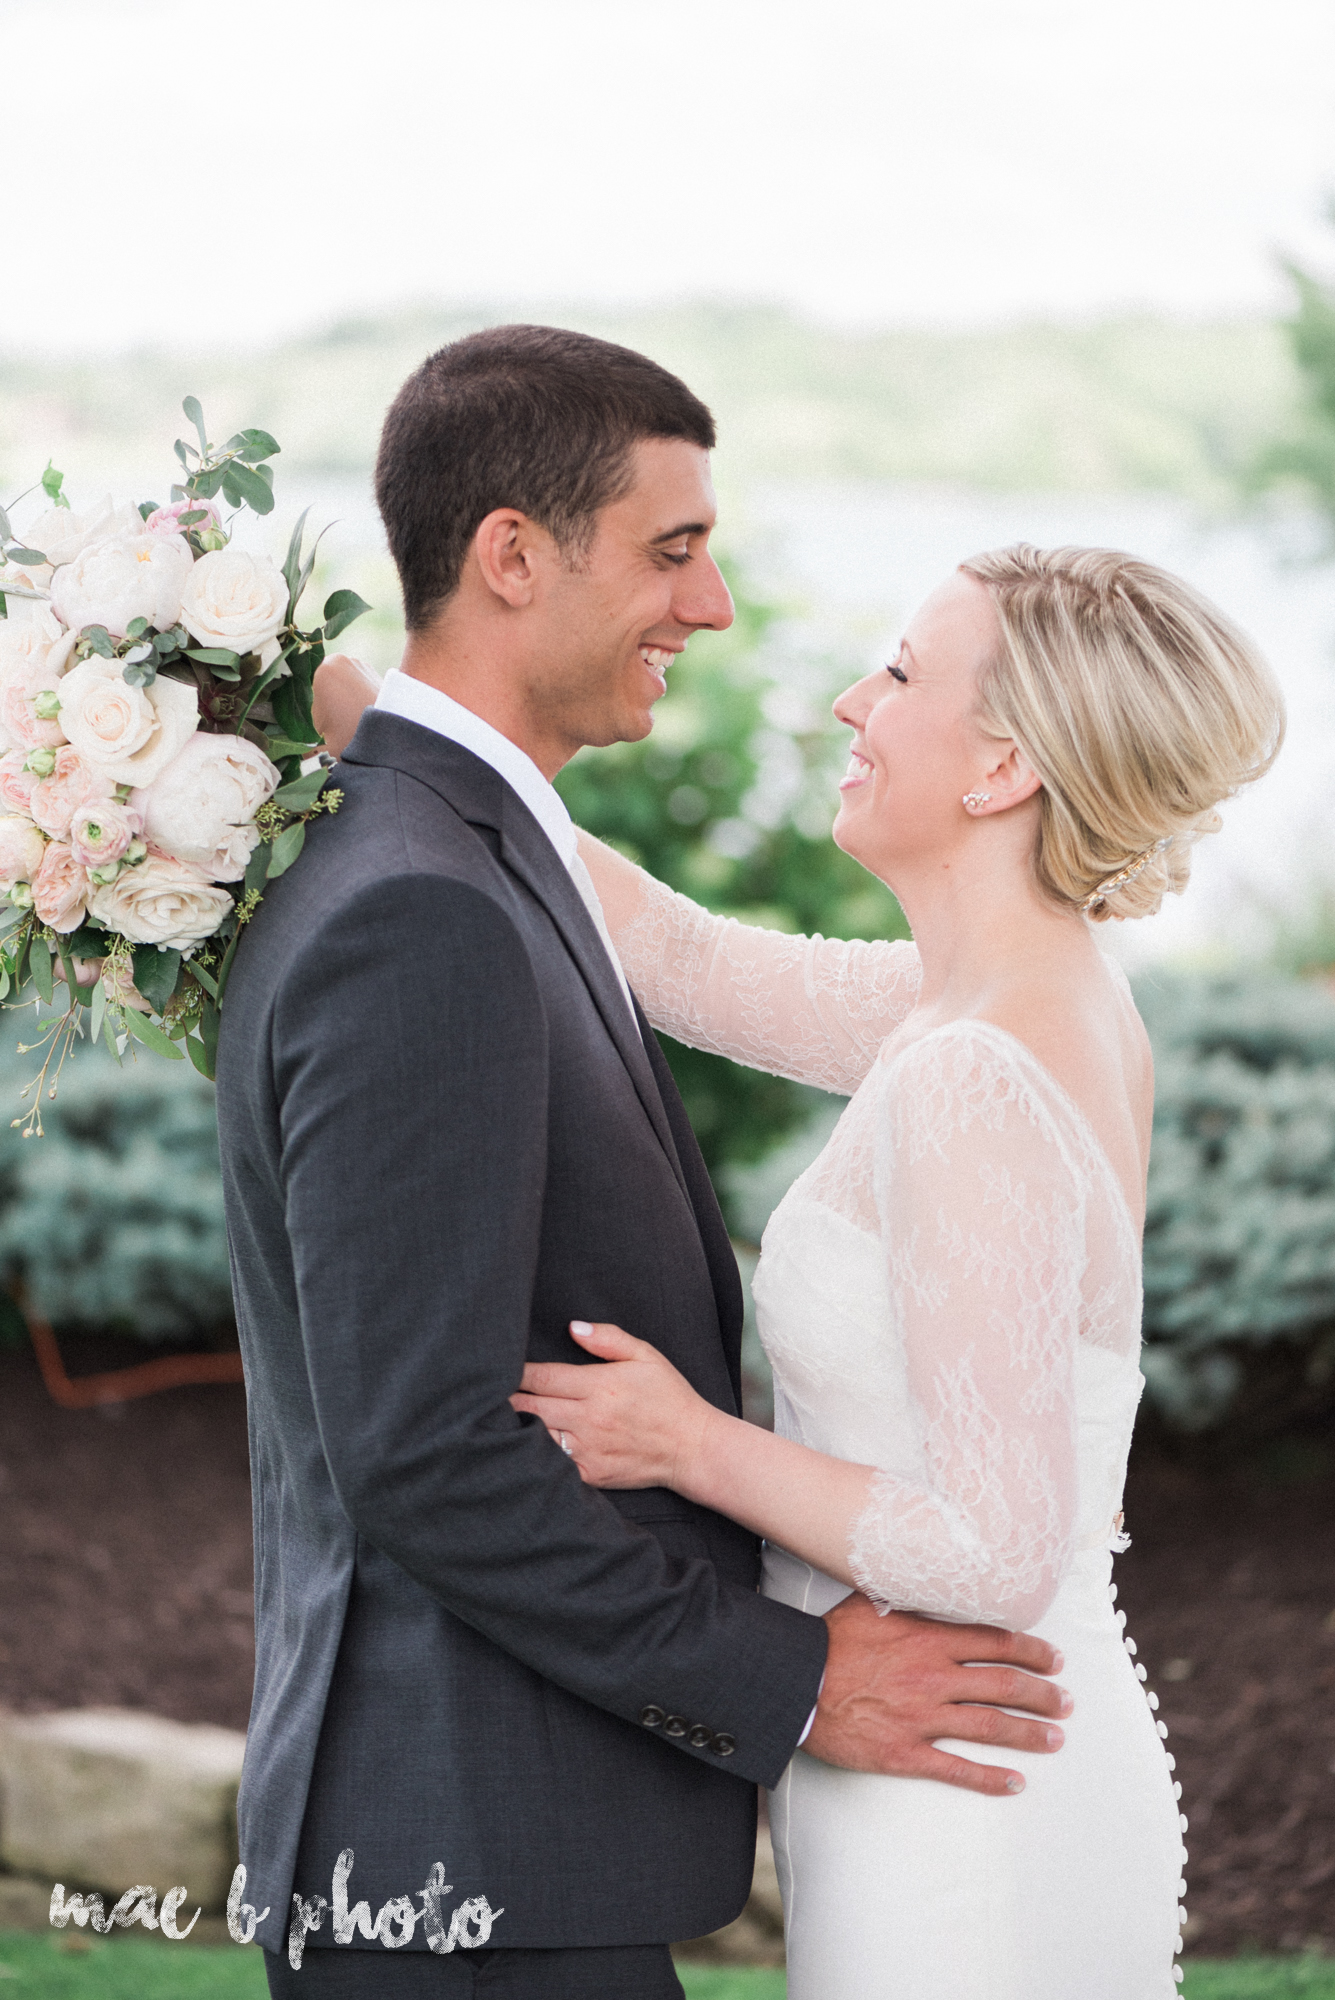 emily and michael's industrial chic summer country club wedding at the lake club in poland ohio photographed by cleveland wedding photographer mae b photo-54.jpg